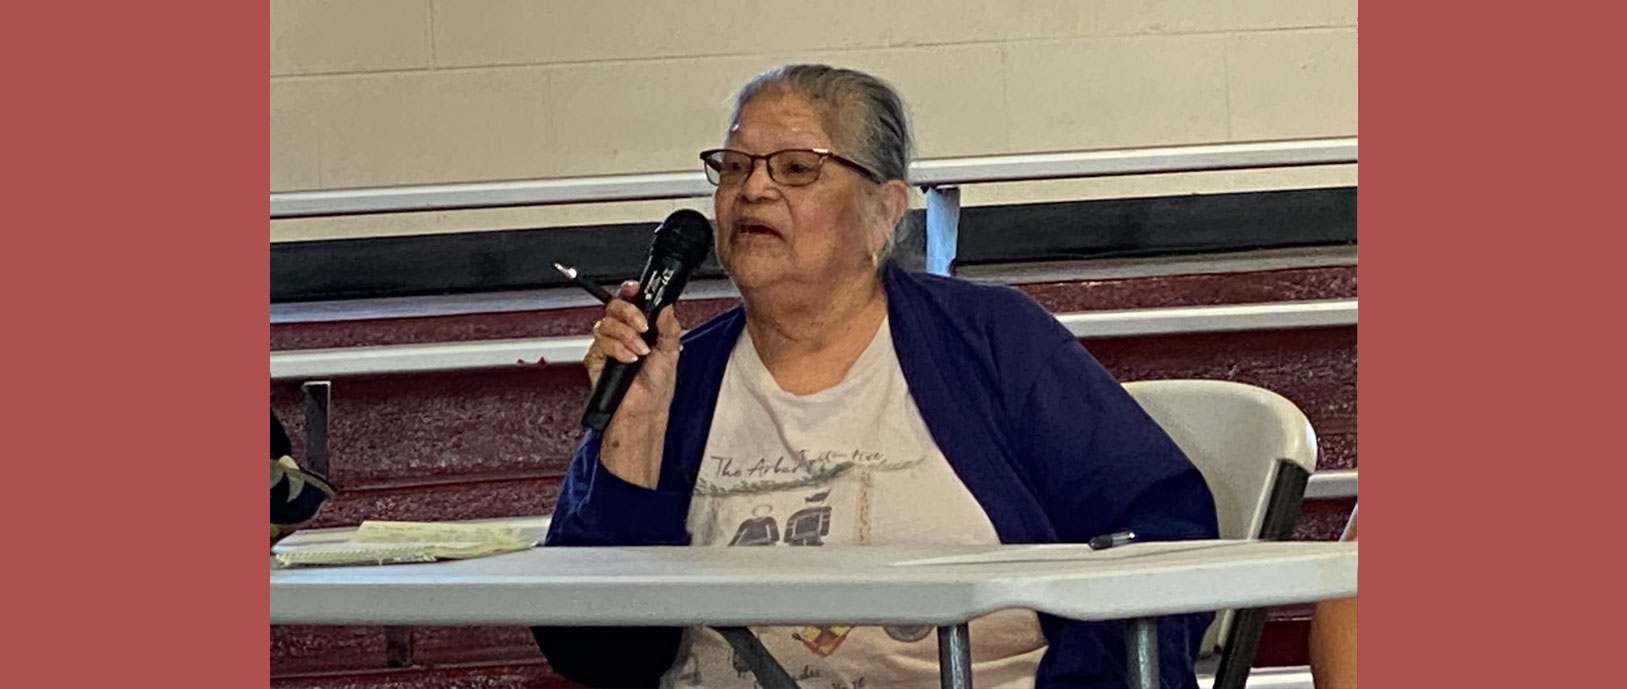 Picture of an elderly lady sitting at a table holding a microphone up to her mouth